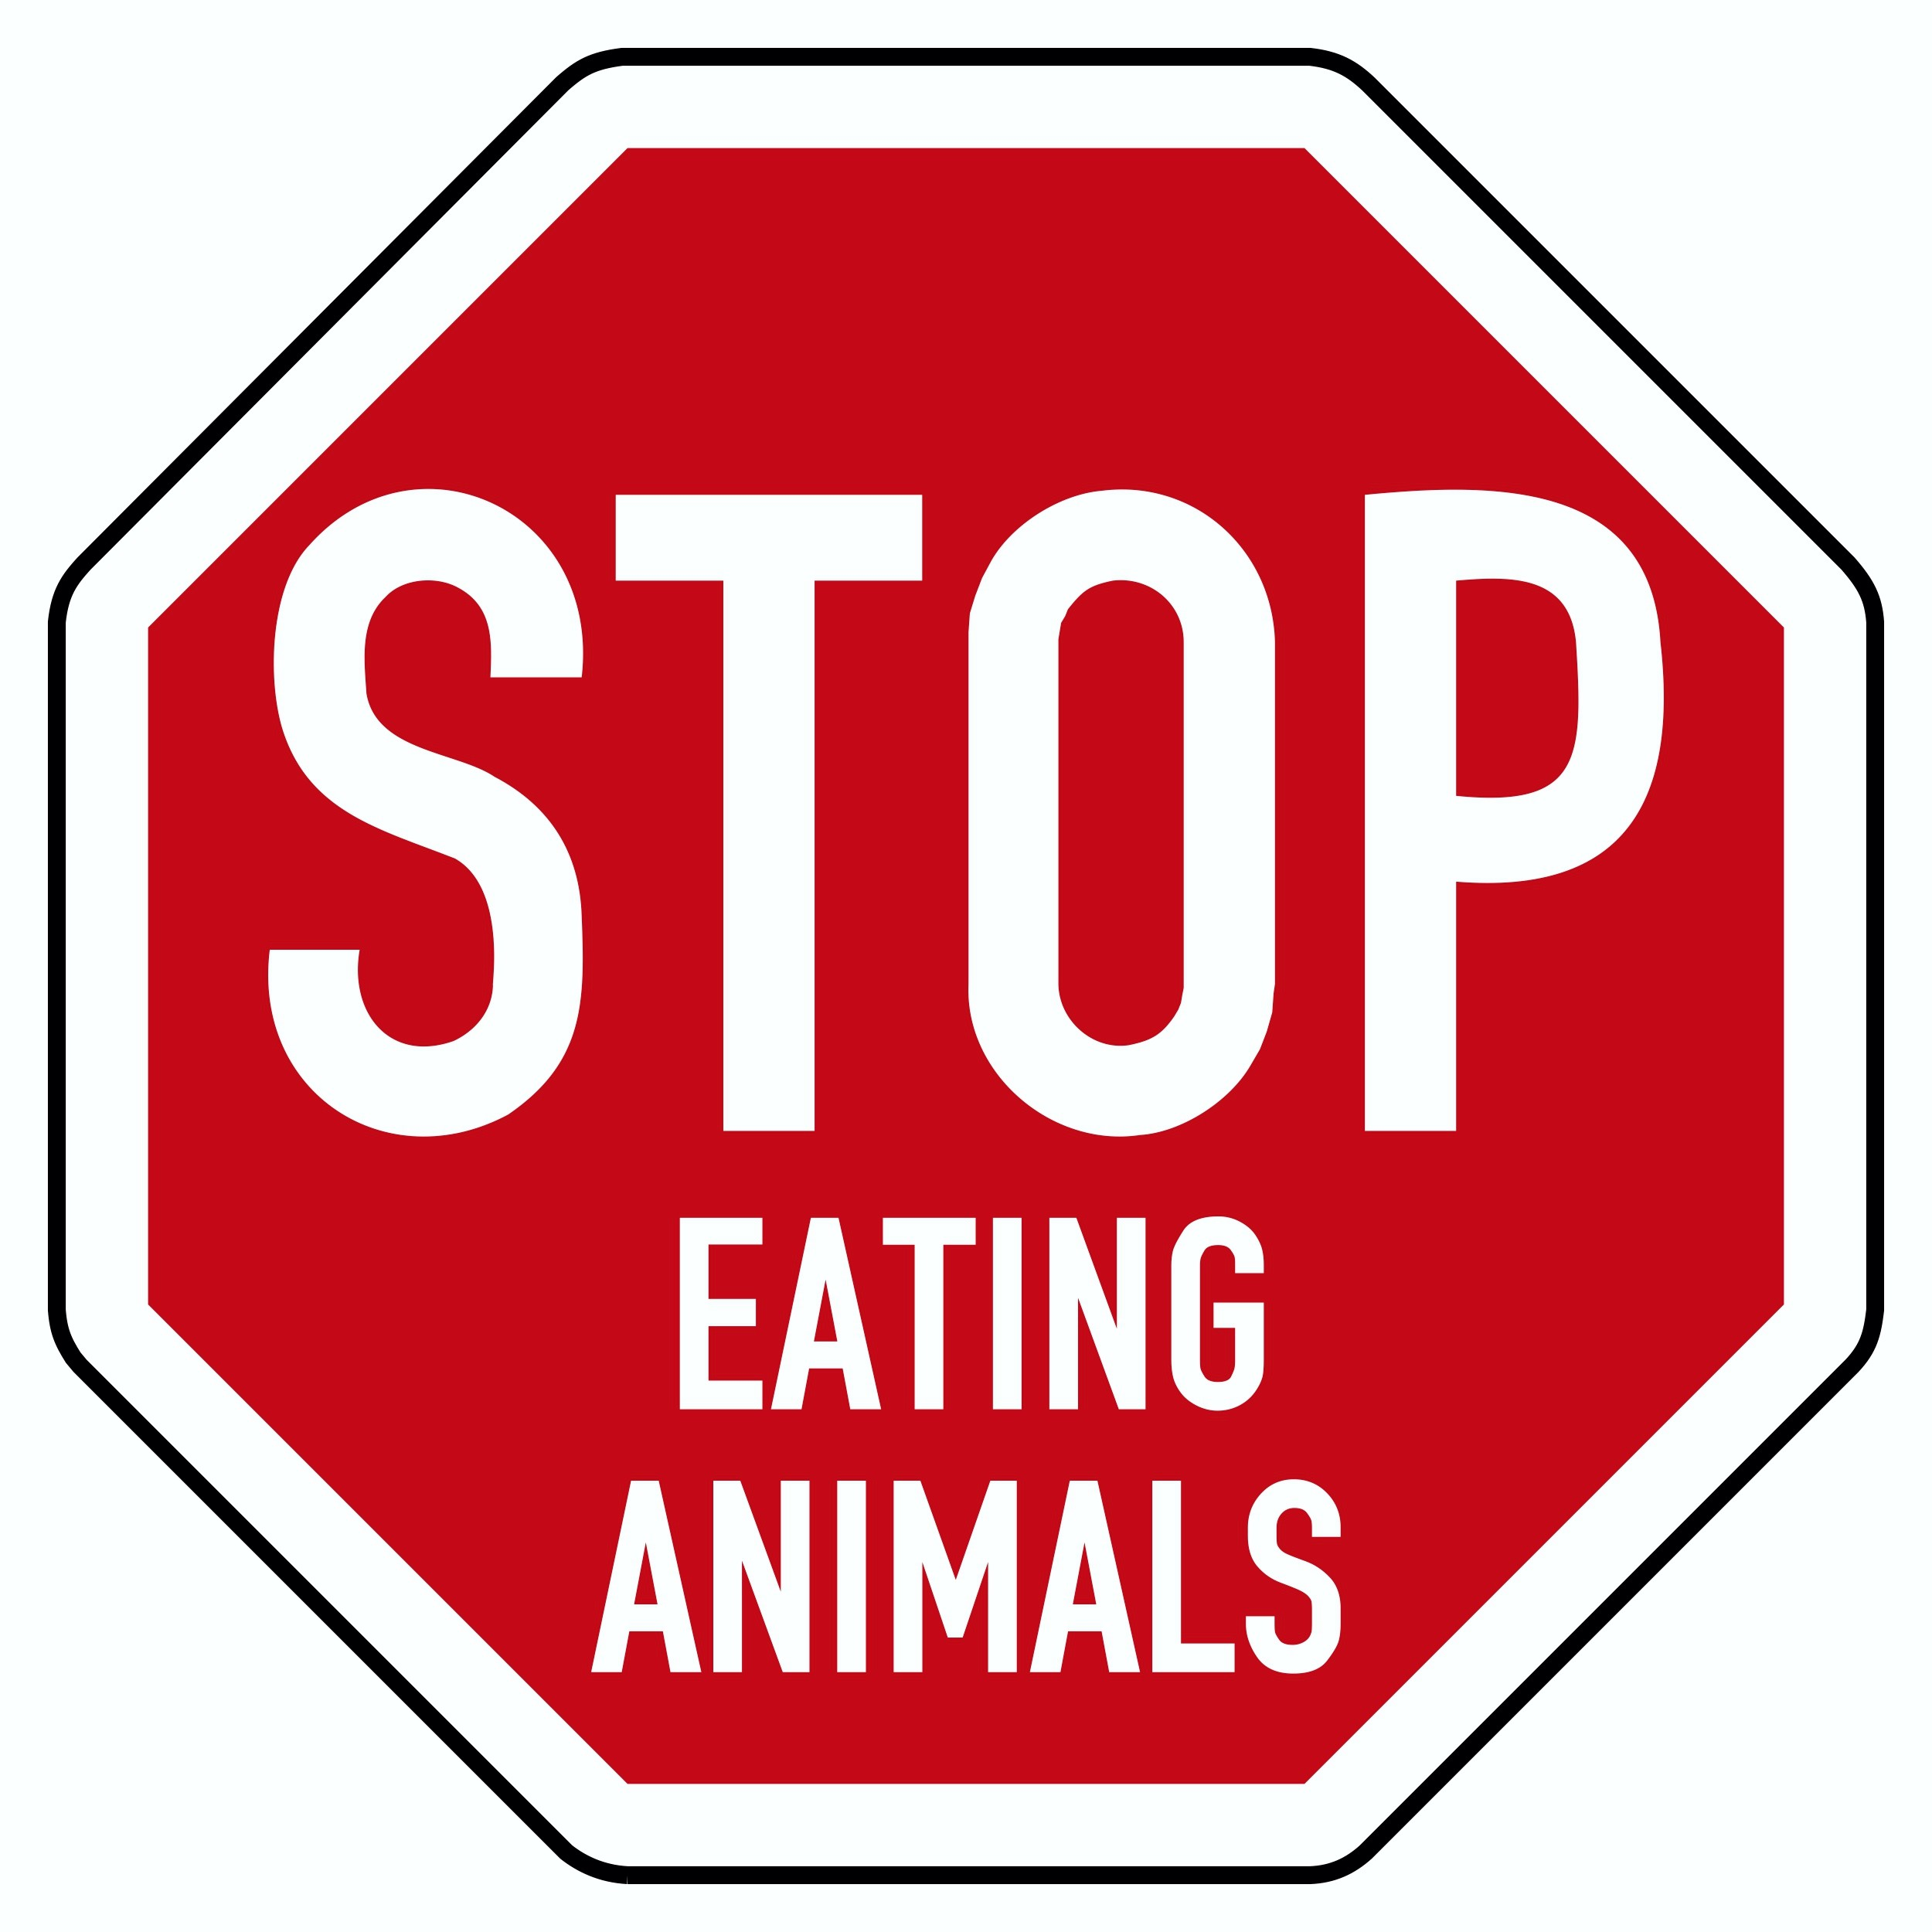 Autocollant Stop Eating Animals! blanc/rouge – Bild 1